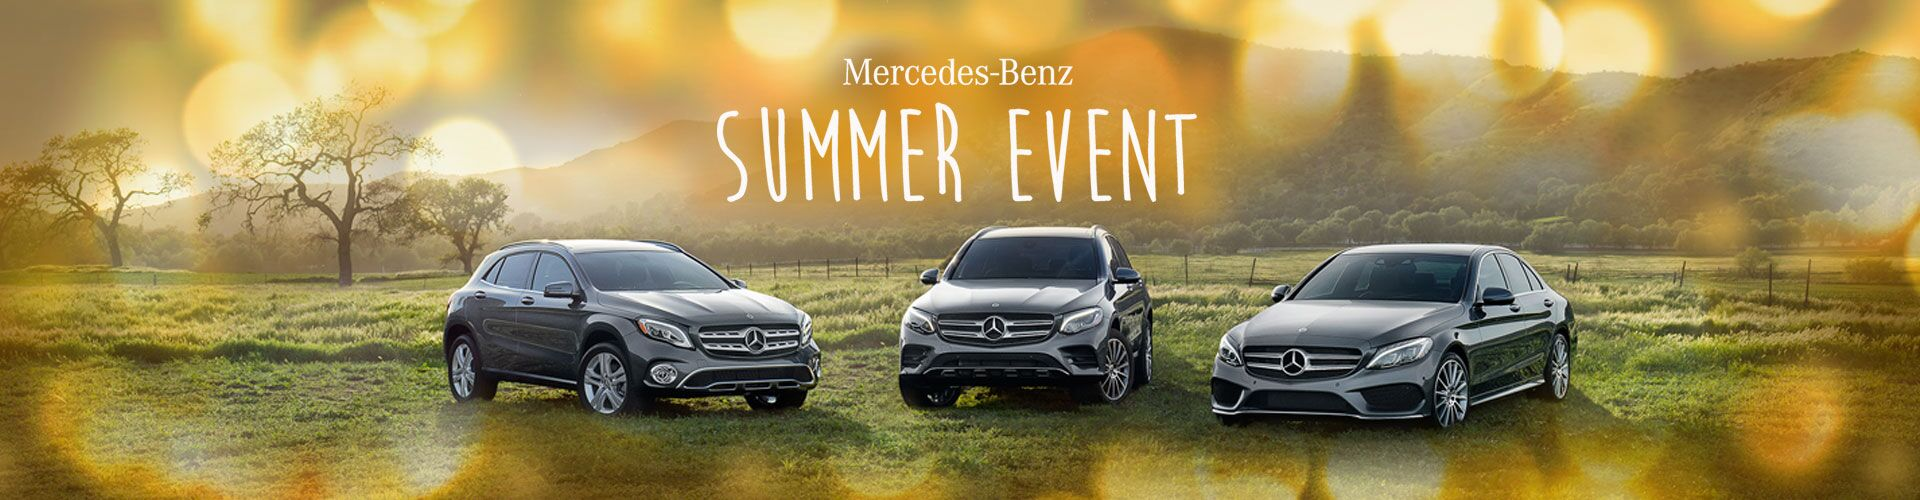 2018 Mercedes-Benz Summer Event